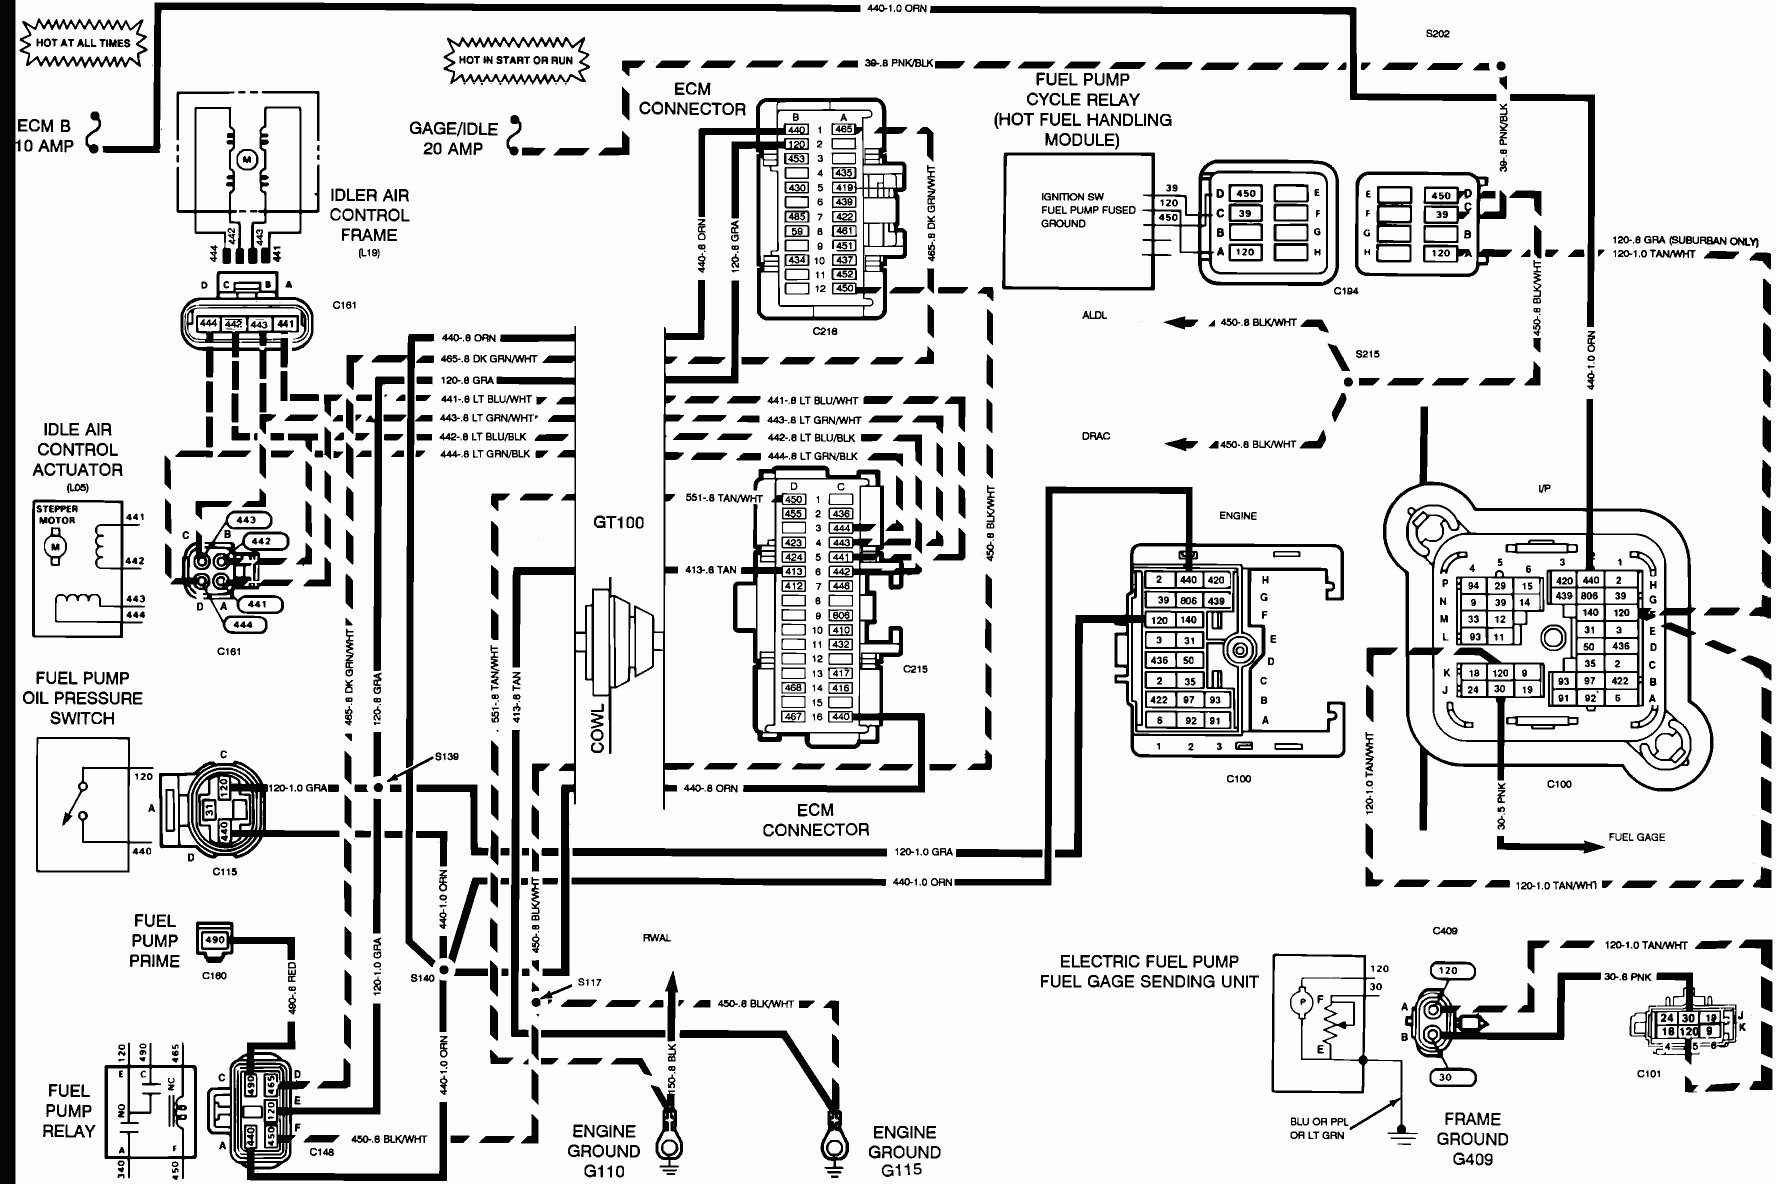 35 Freightliner Chassis Wiring Diagram